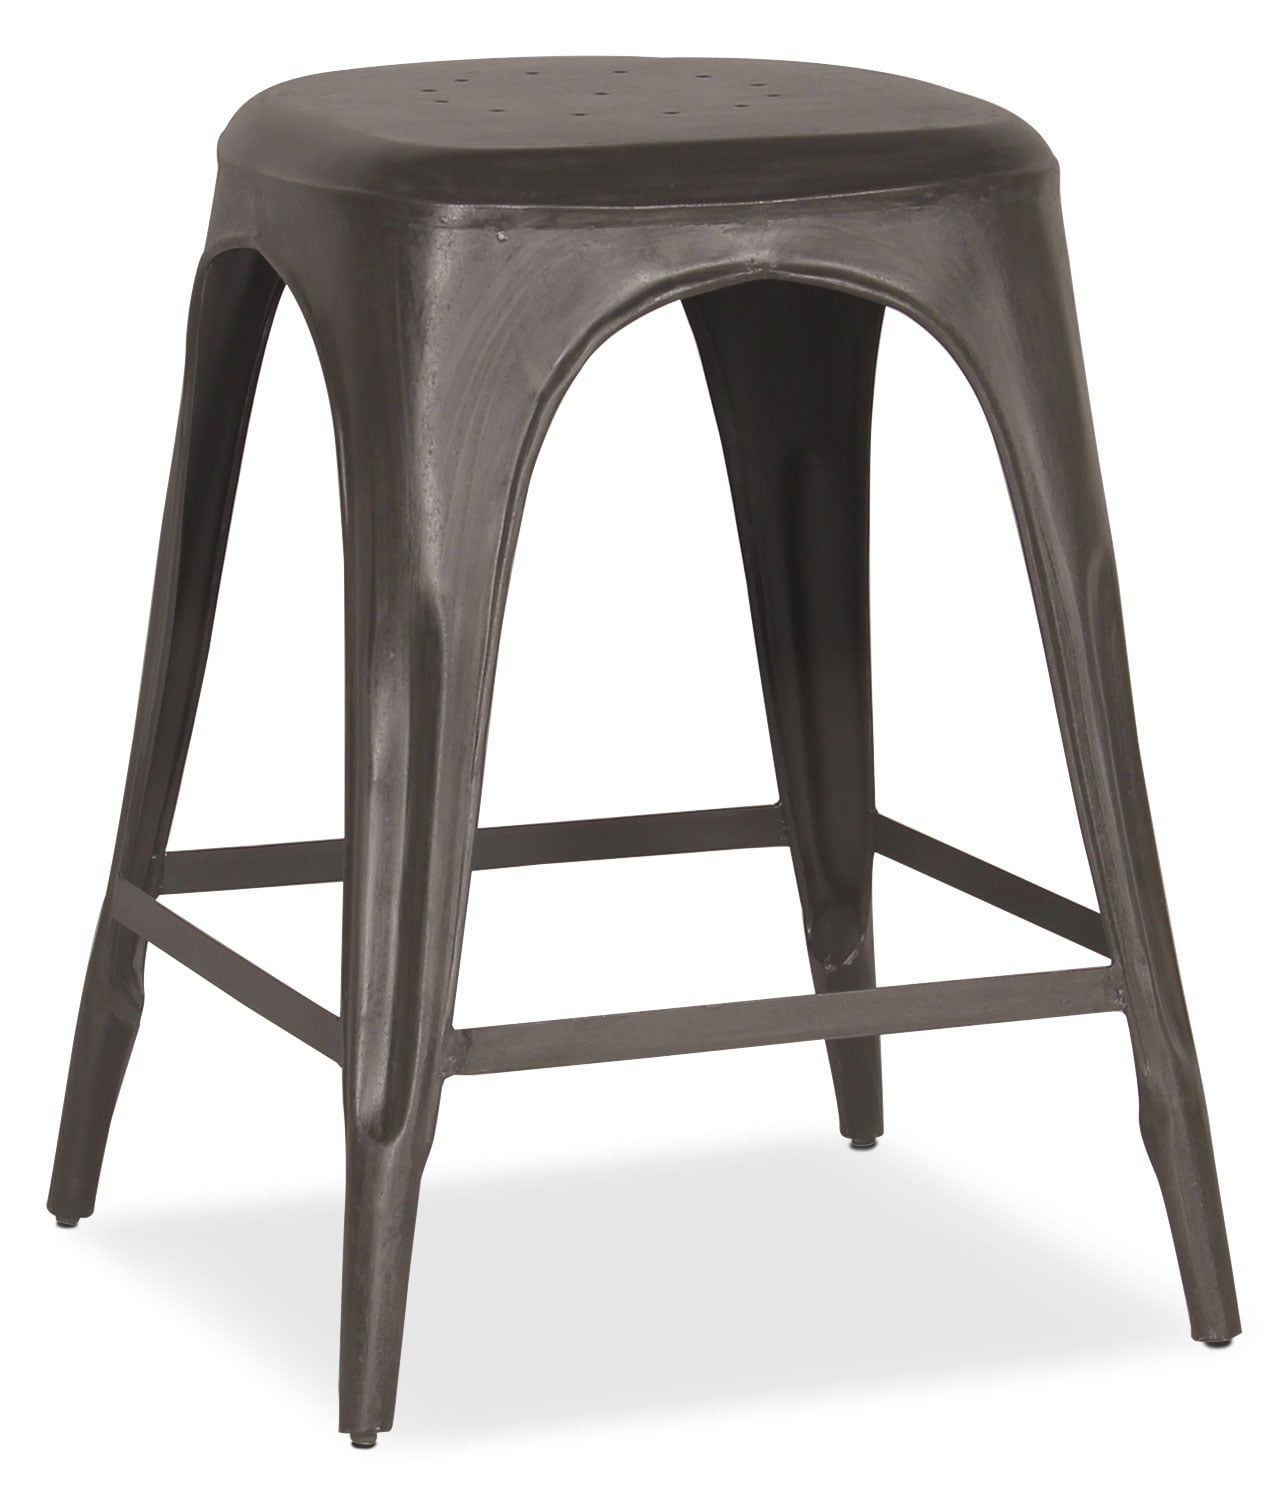 Dining Room Furniture - Holden Backless Counter-Height Stool - Black